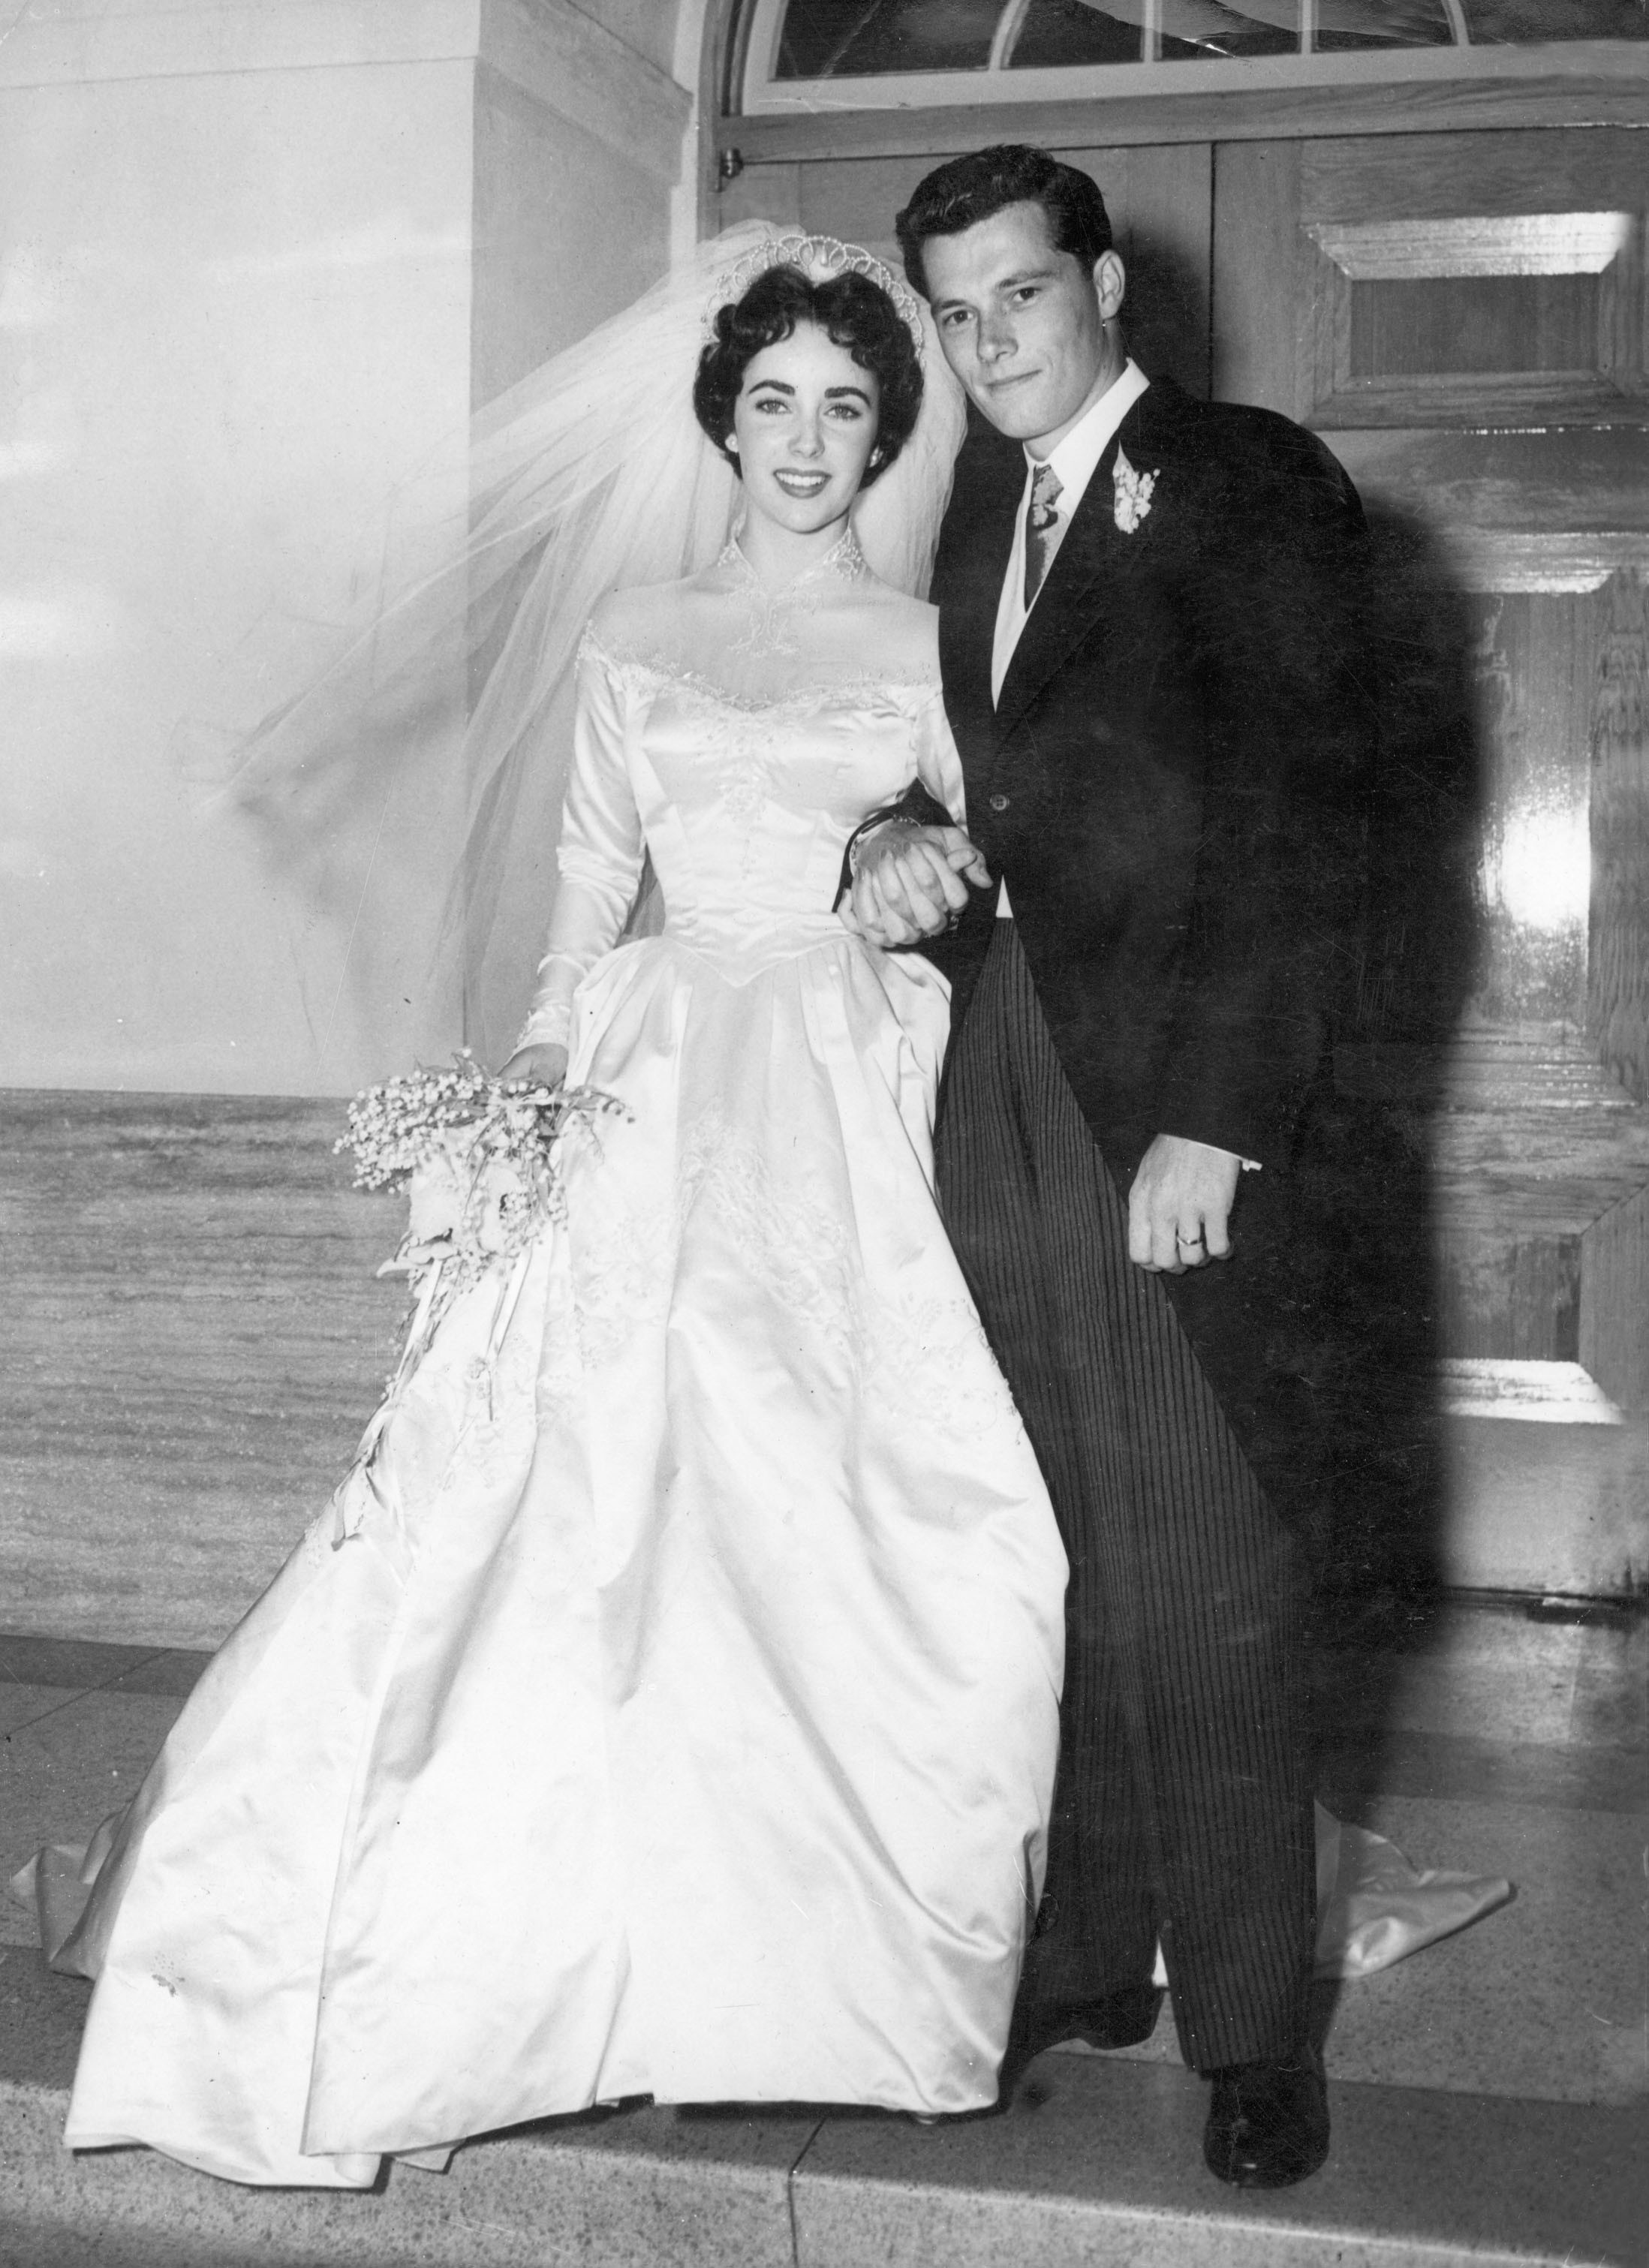 Elizabeth Taylor Wedding Dress Up For Auction (PHOTO) | HuffPost